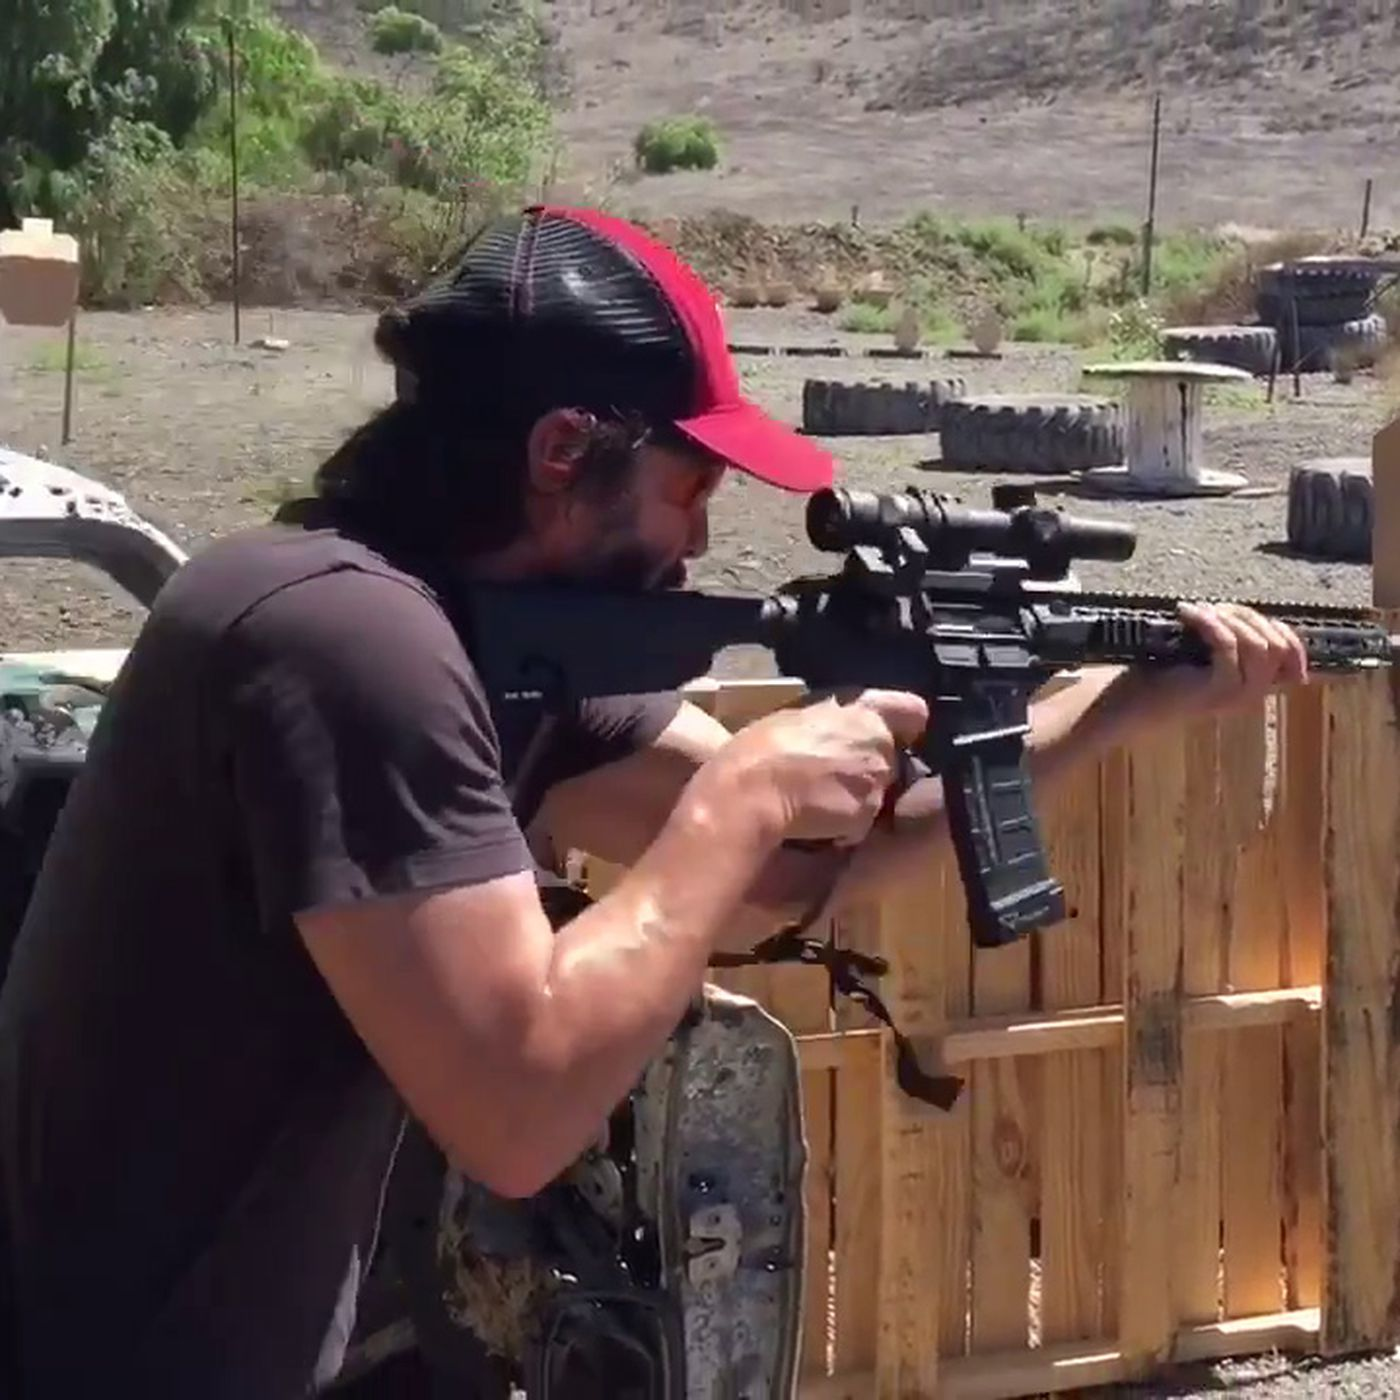 Watch Keanu Reeves tear up a training ground in stunning